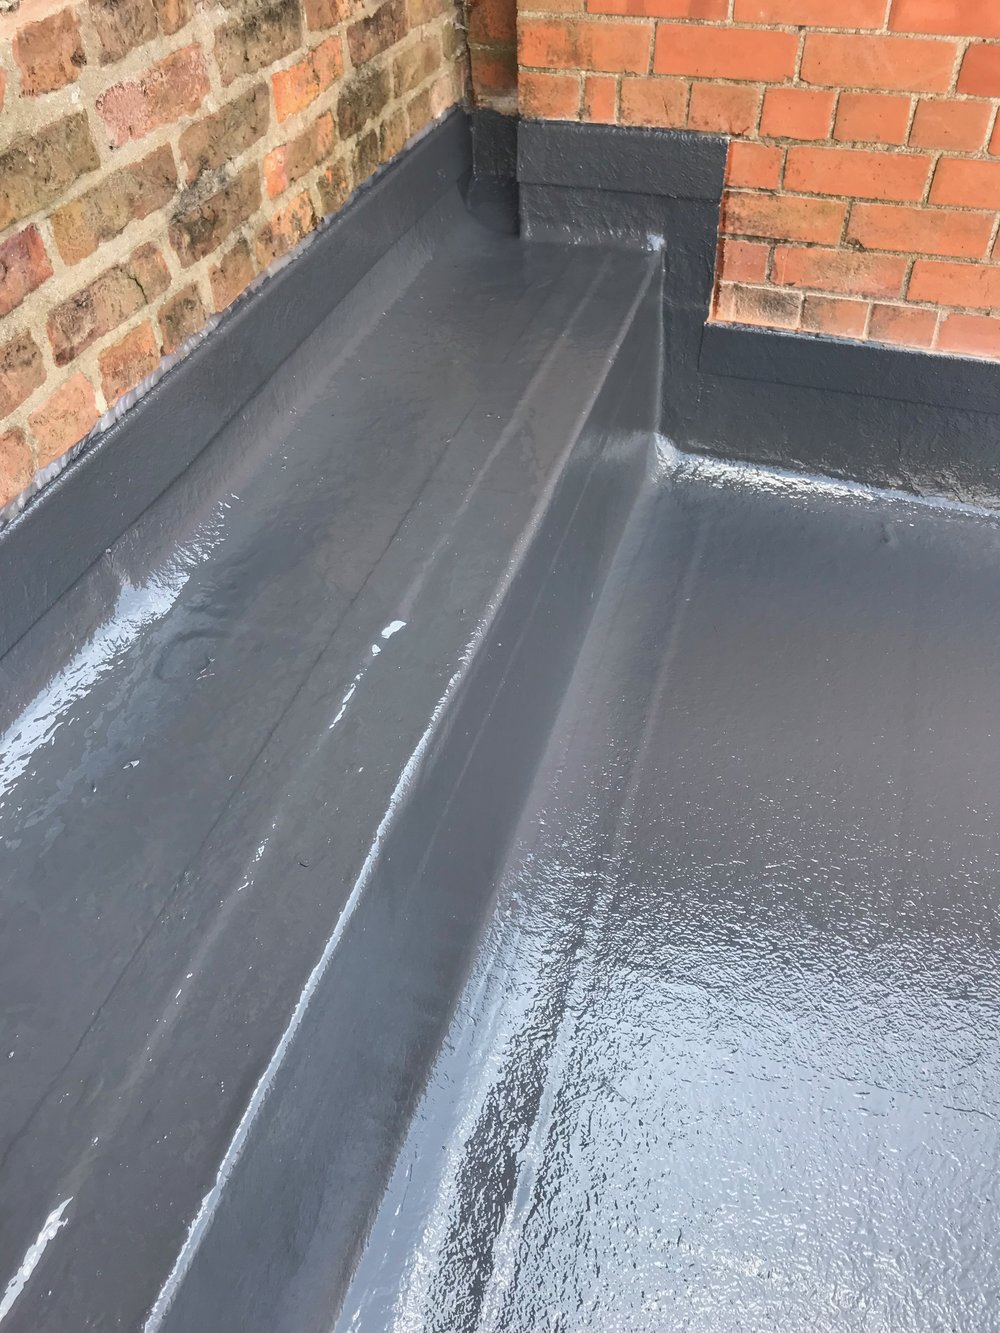 No more trouble - The Fibreworx system perfectly takes care of this troublesome parapet/wall area, which is now perfectly boxed in, laminated and sealed for life.